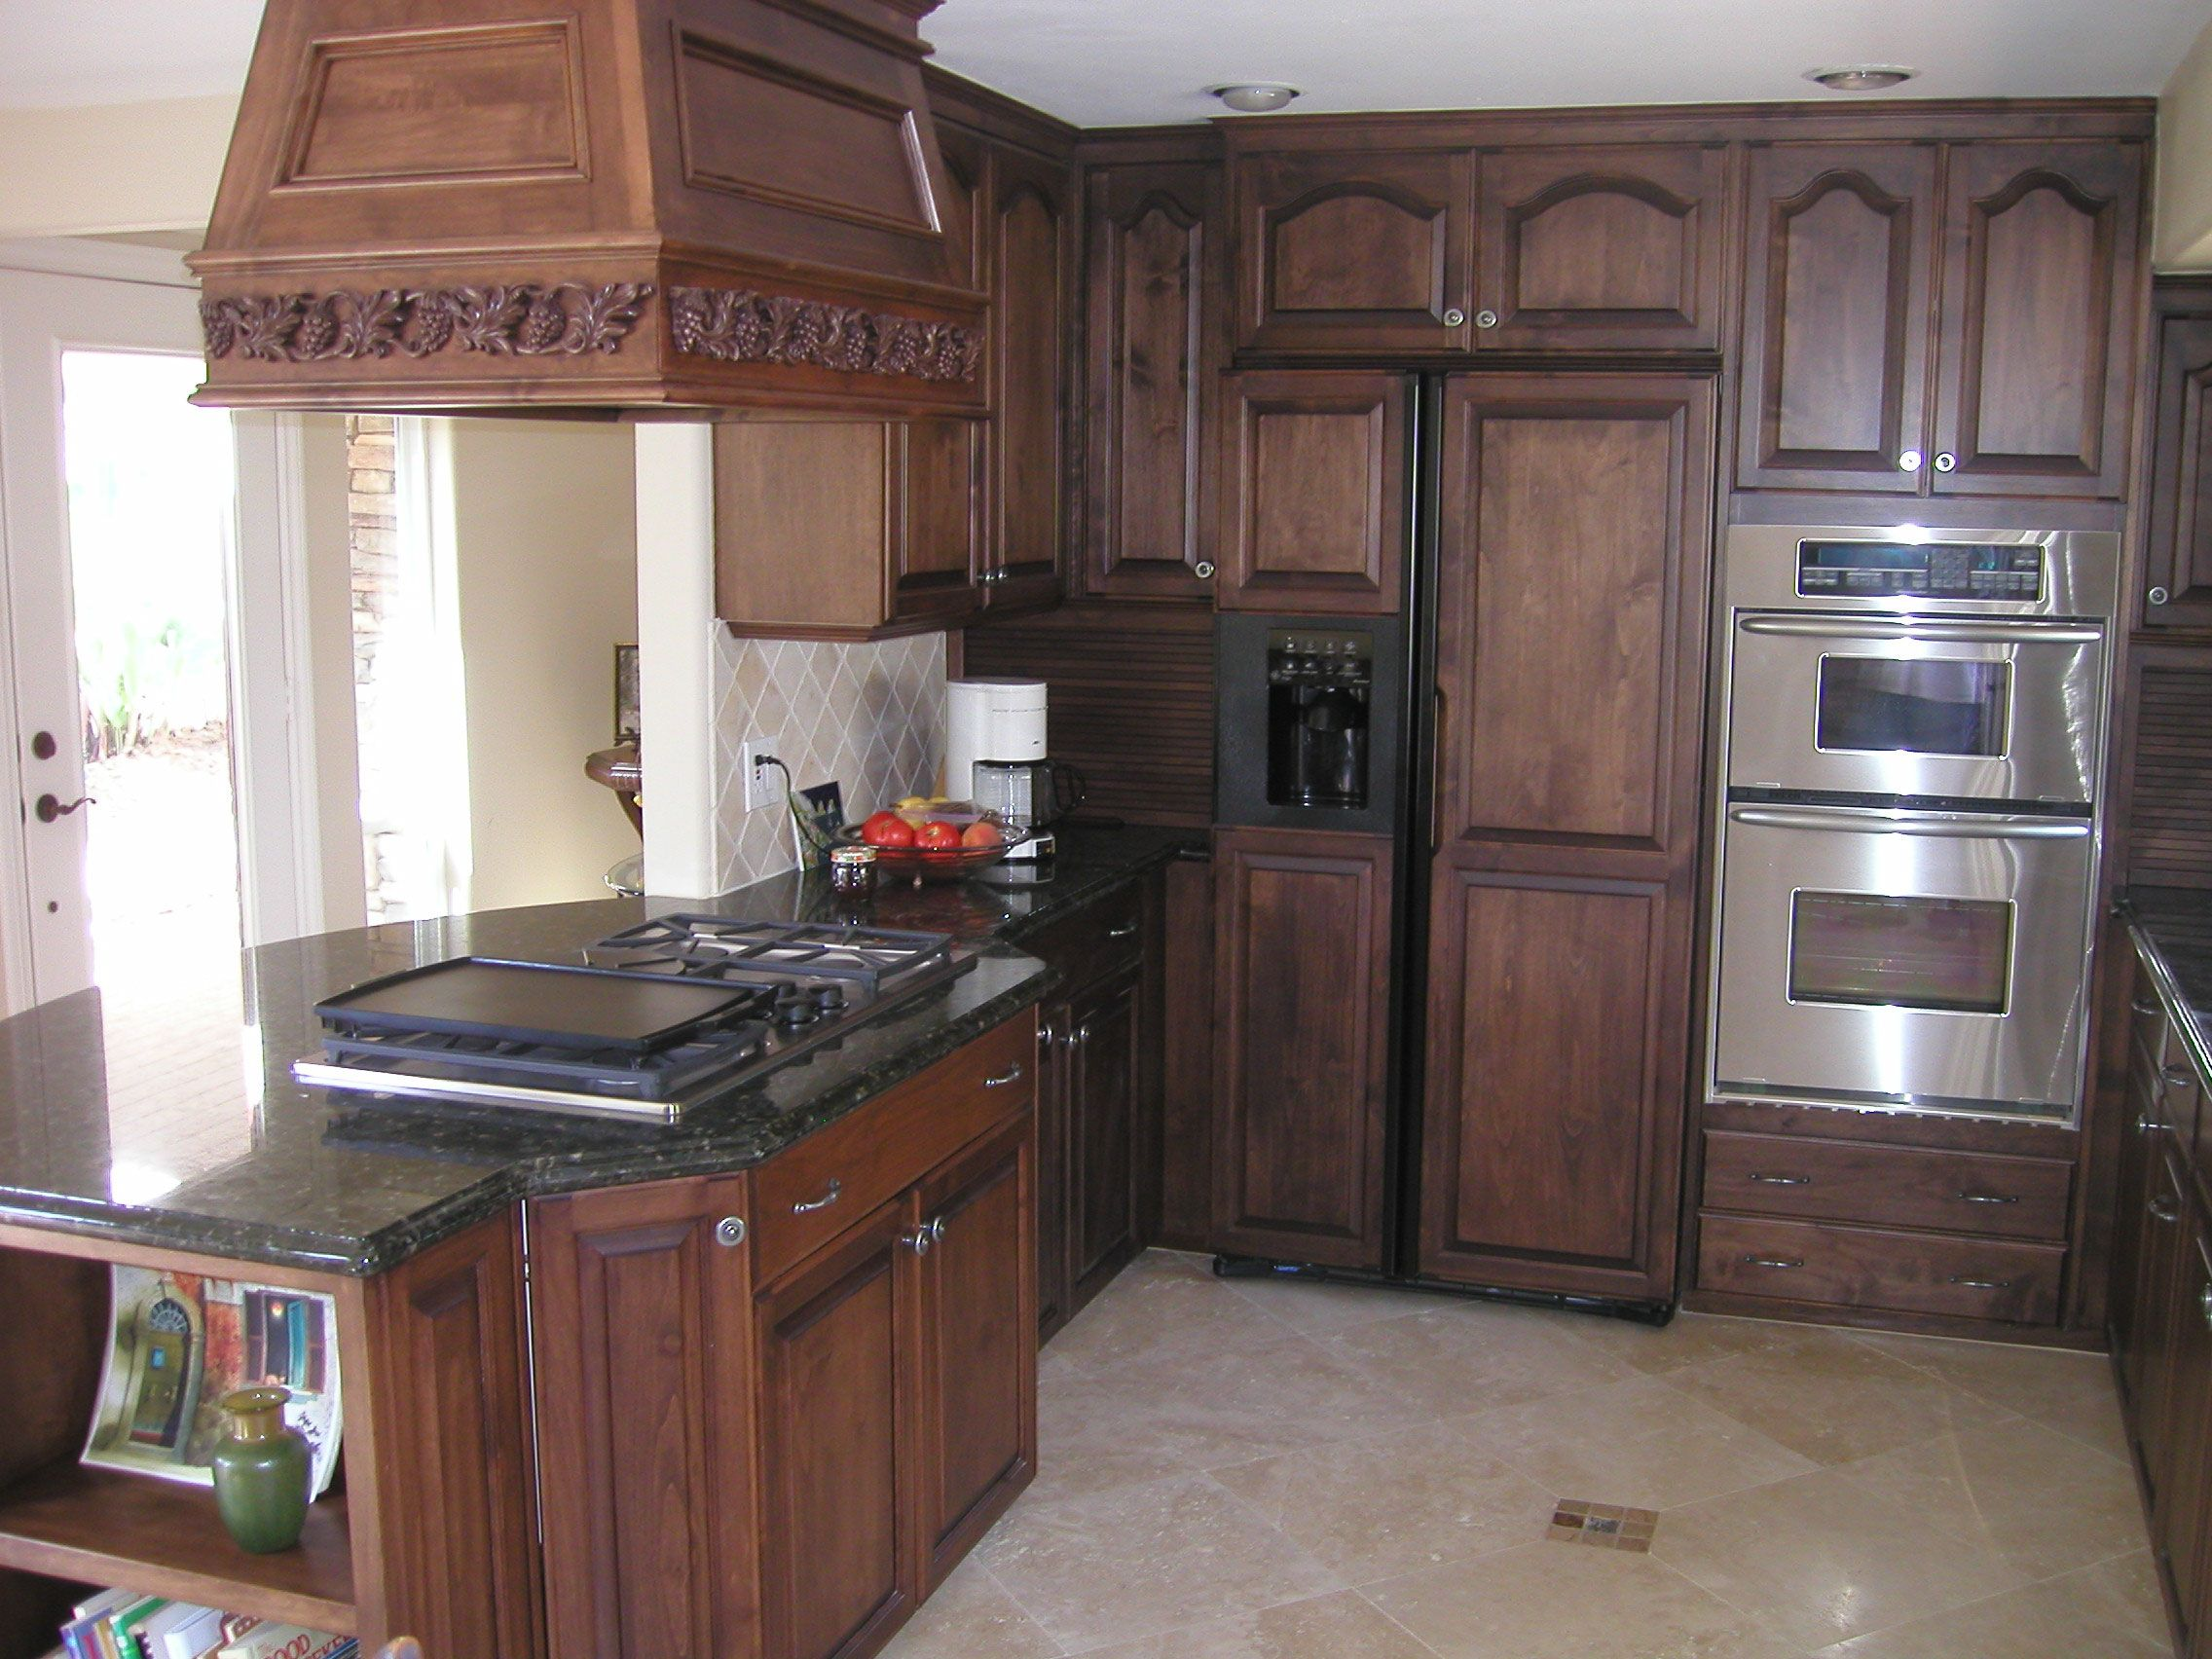 how to stain oak cabinets | ... kitchen cabinets. Stained dark oak and